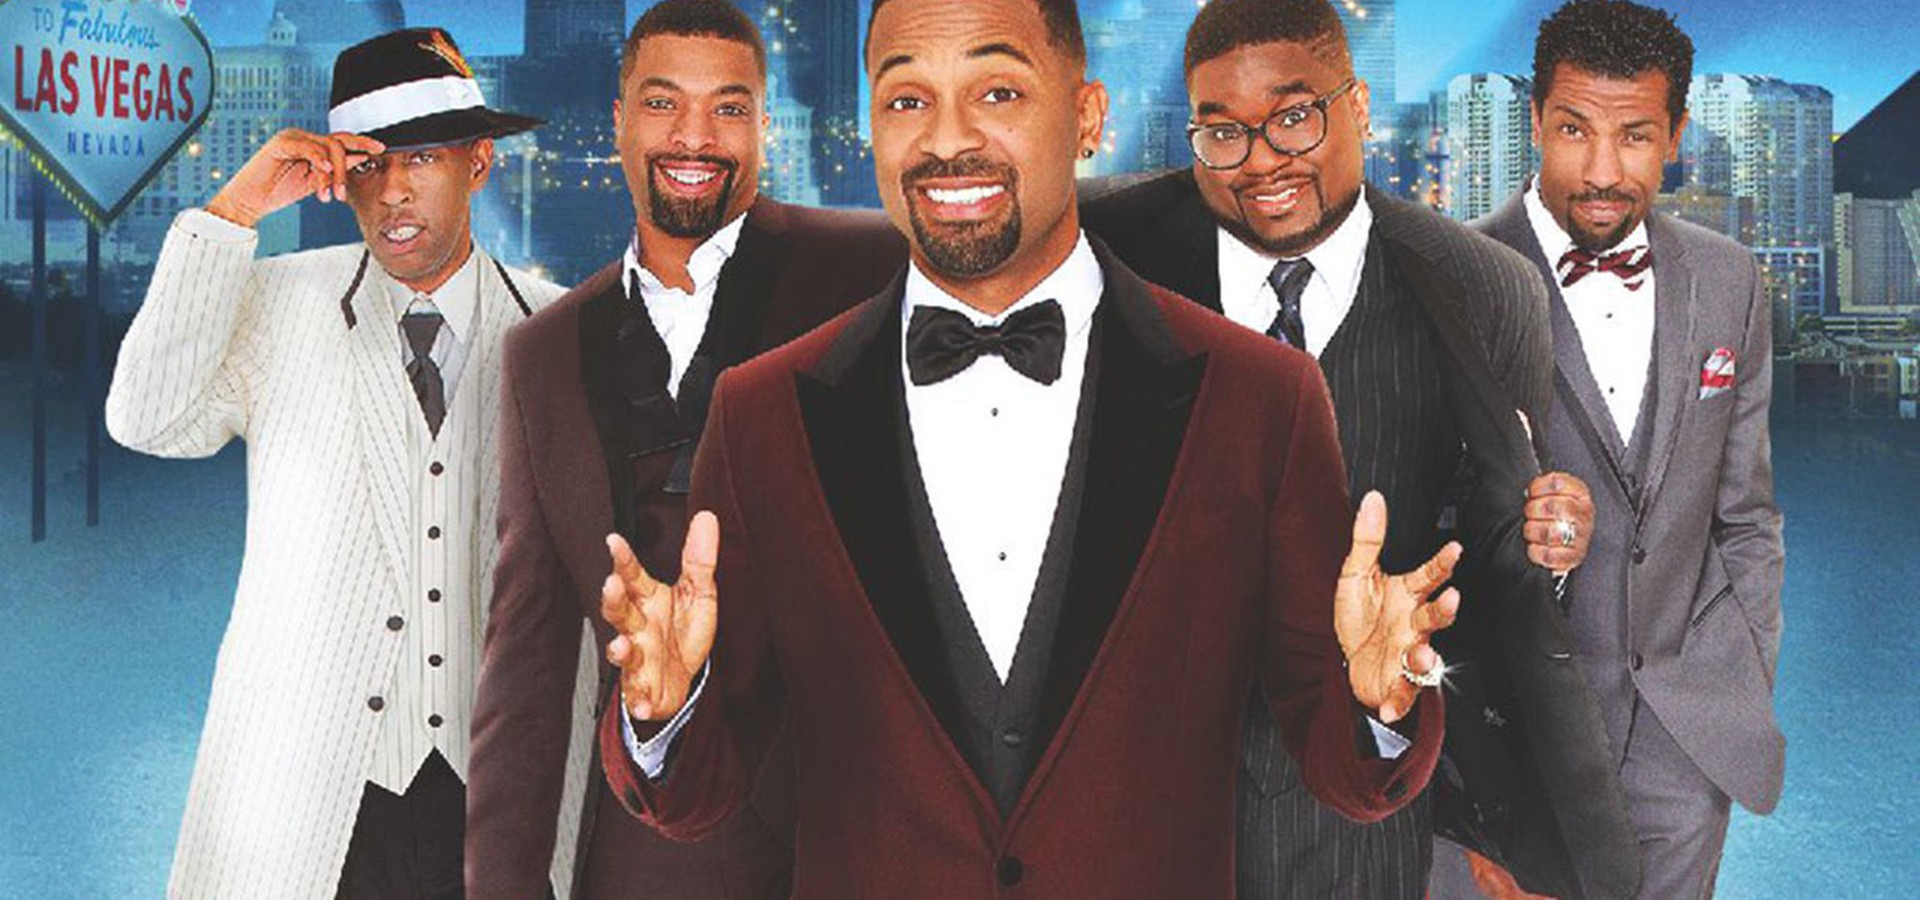 All Star Comedy Jam: Live from Las Vegas